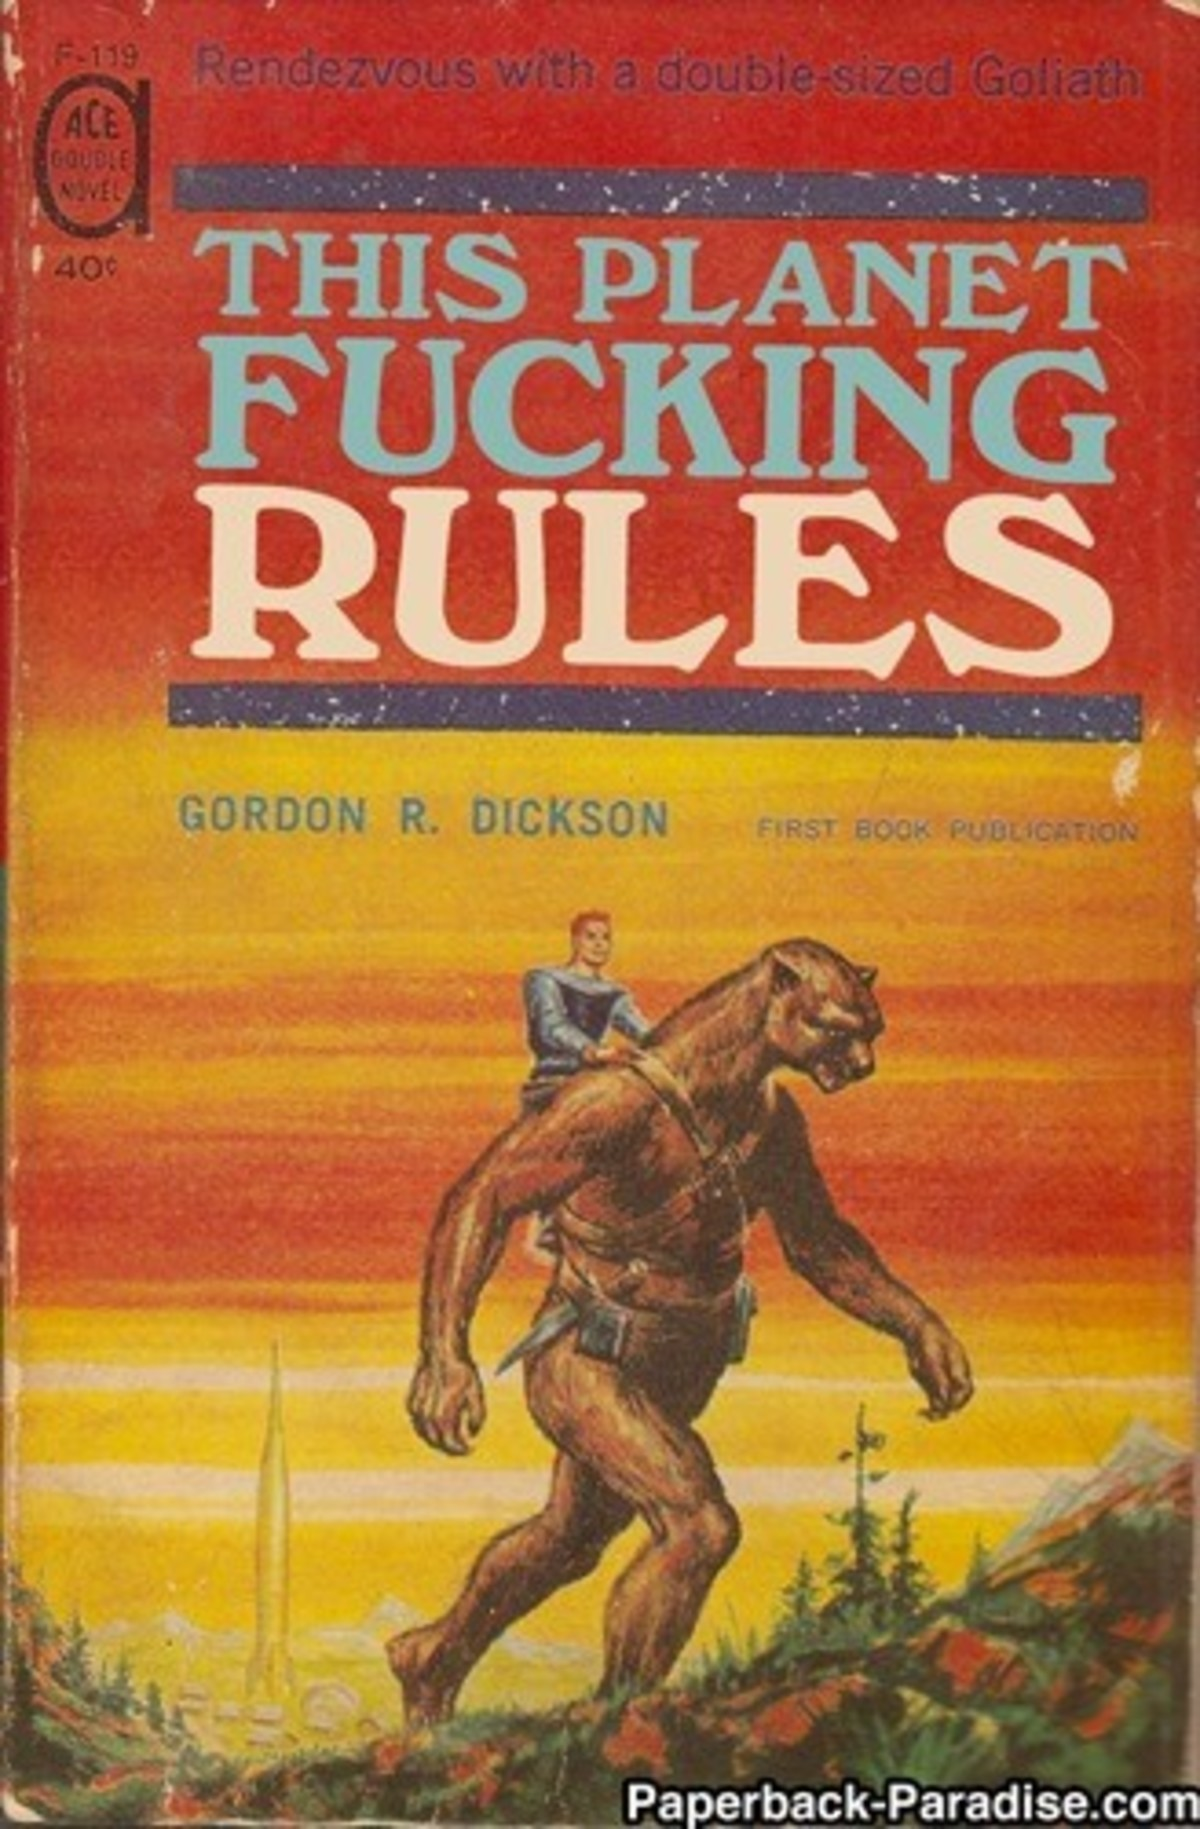 Late ht D&D Creation Stream. Come hang and help me build a world, or an encounter, or anything!. THIS ARPANET FUCKING RULES,. I love fake book covers